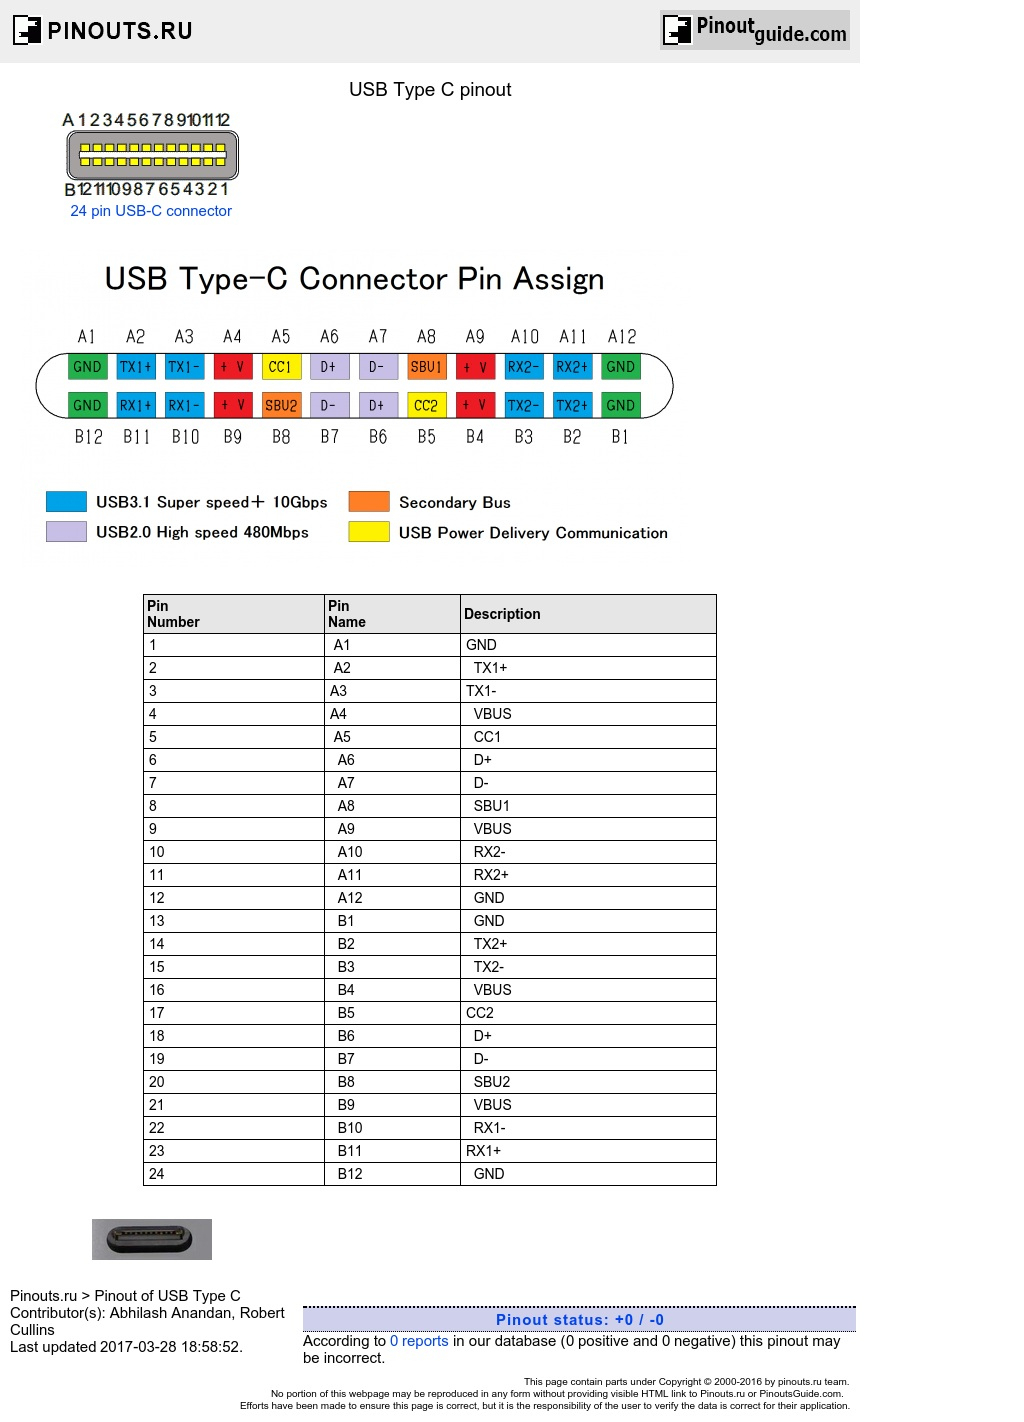 Usb Type C Pinout Diagram @ Pinoutguide - Usb C Cable Wiring Diagram